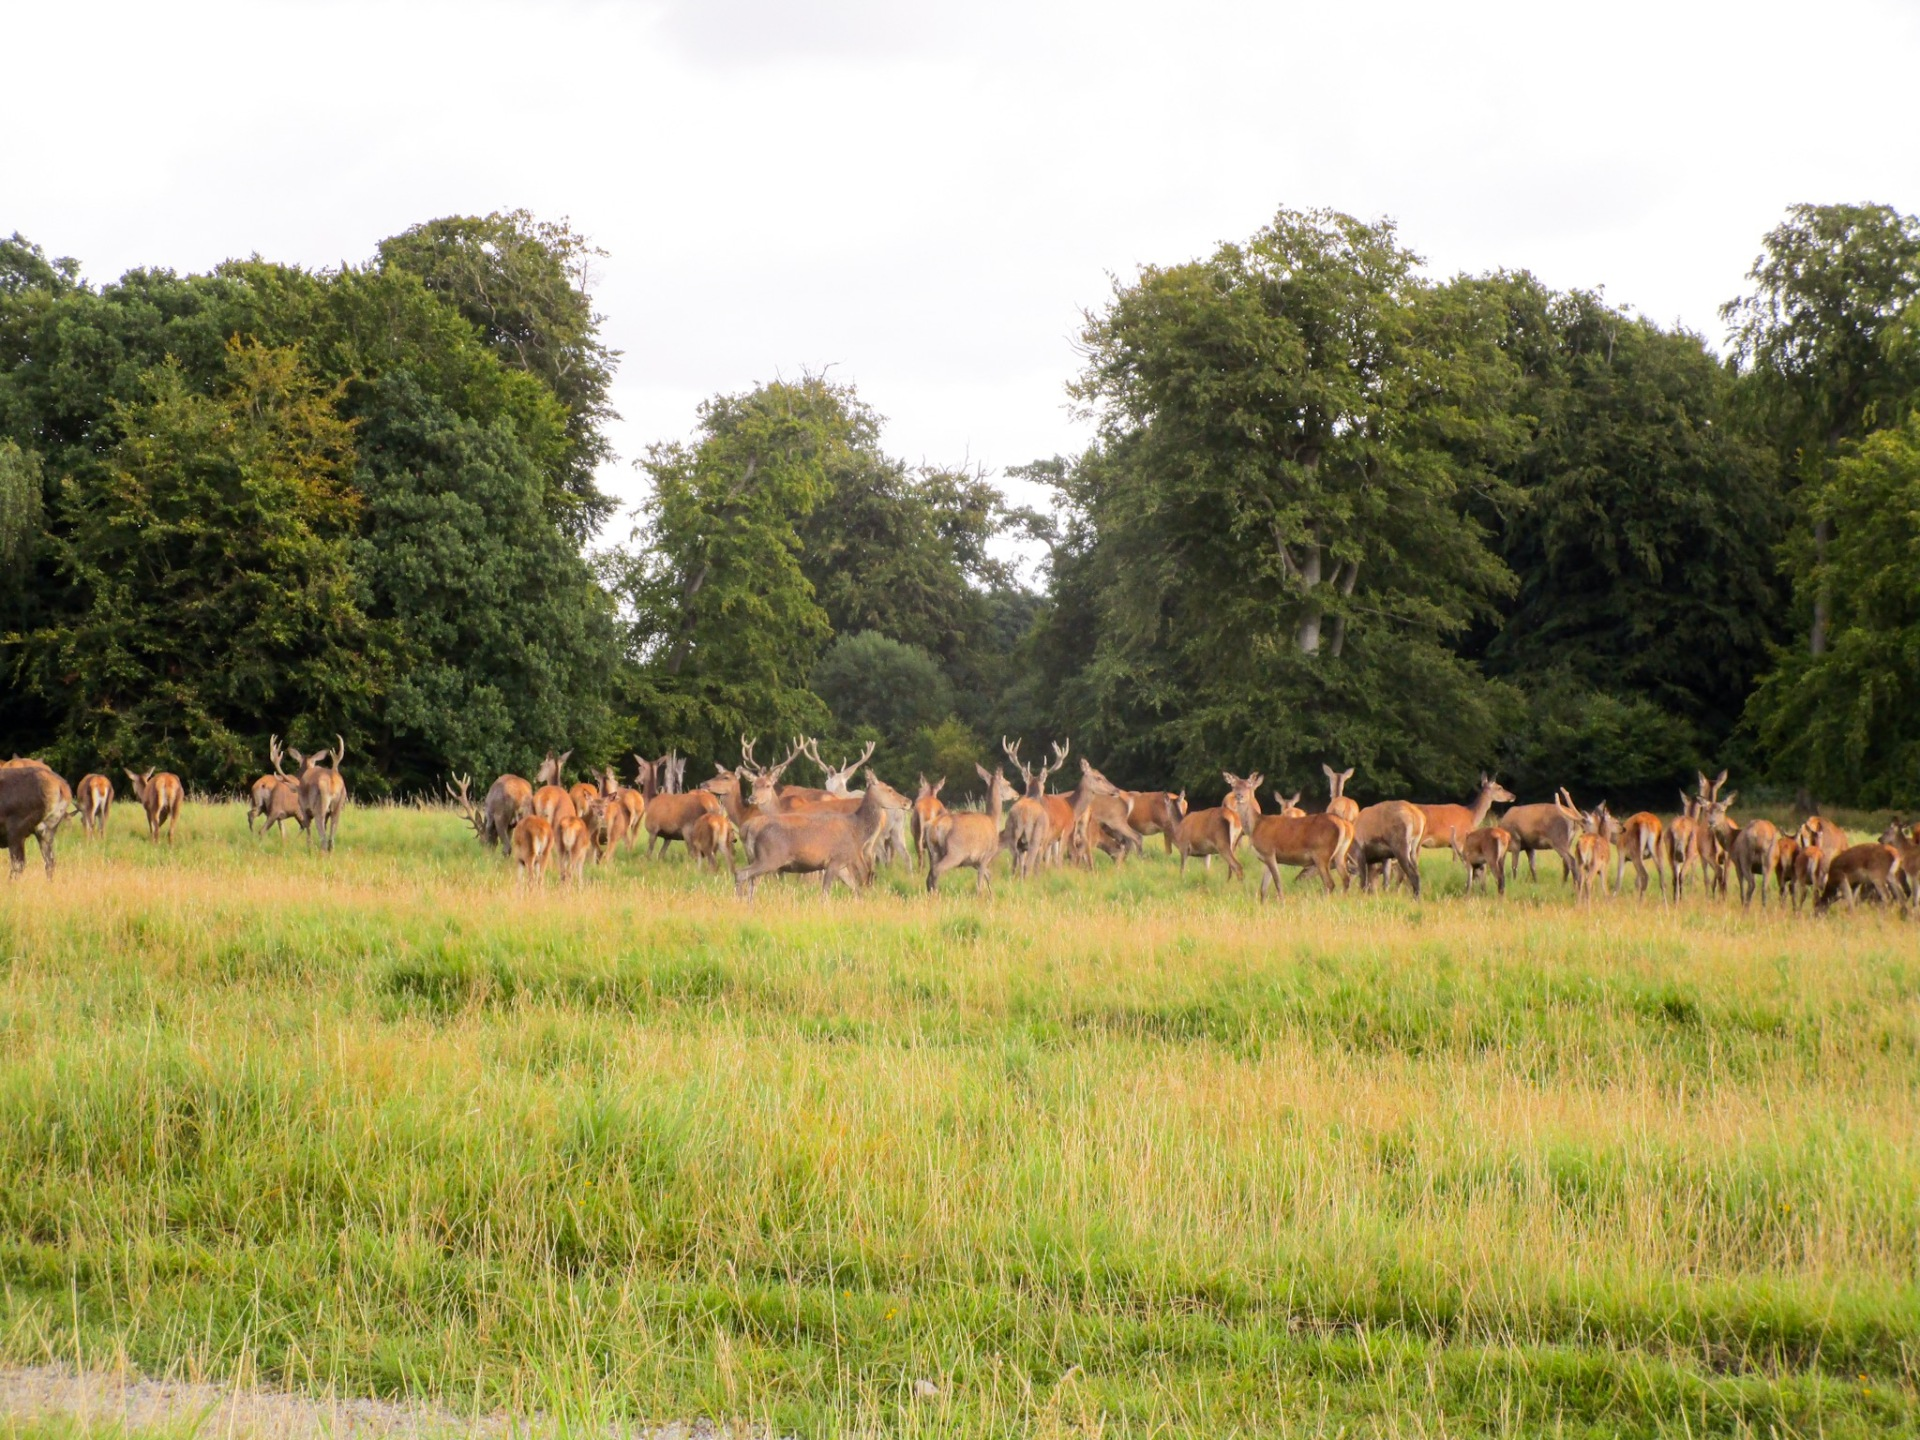 A herd of deer in Denmark